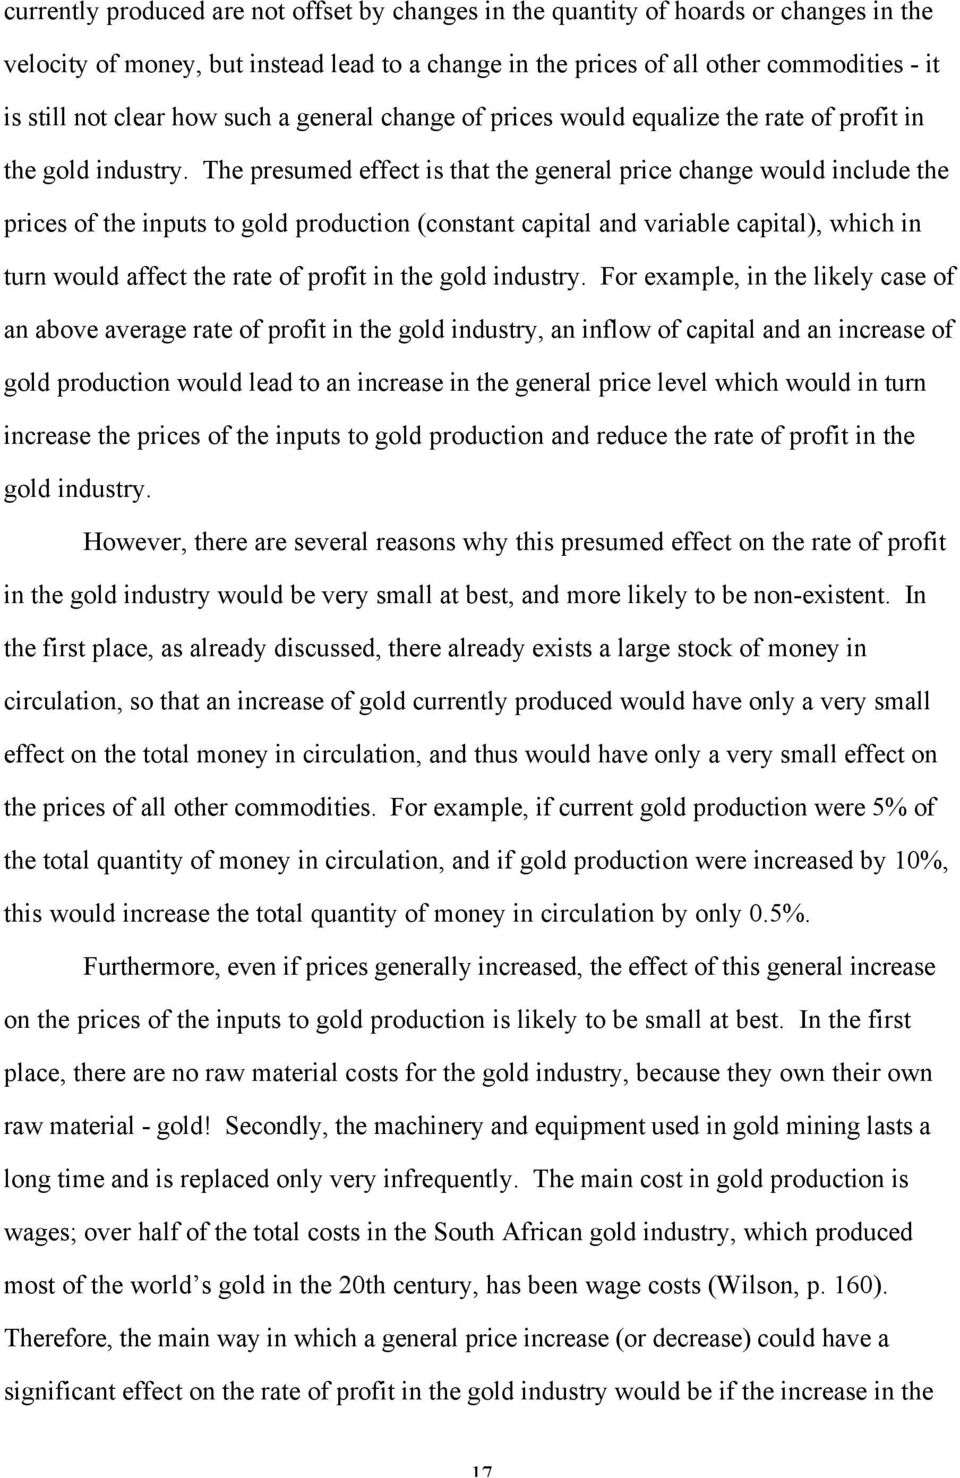 The presumed effect is that the general price change would include the prices of the inputs to gold production (constant capital and variable capital), which in turn would affect the rate of profit